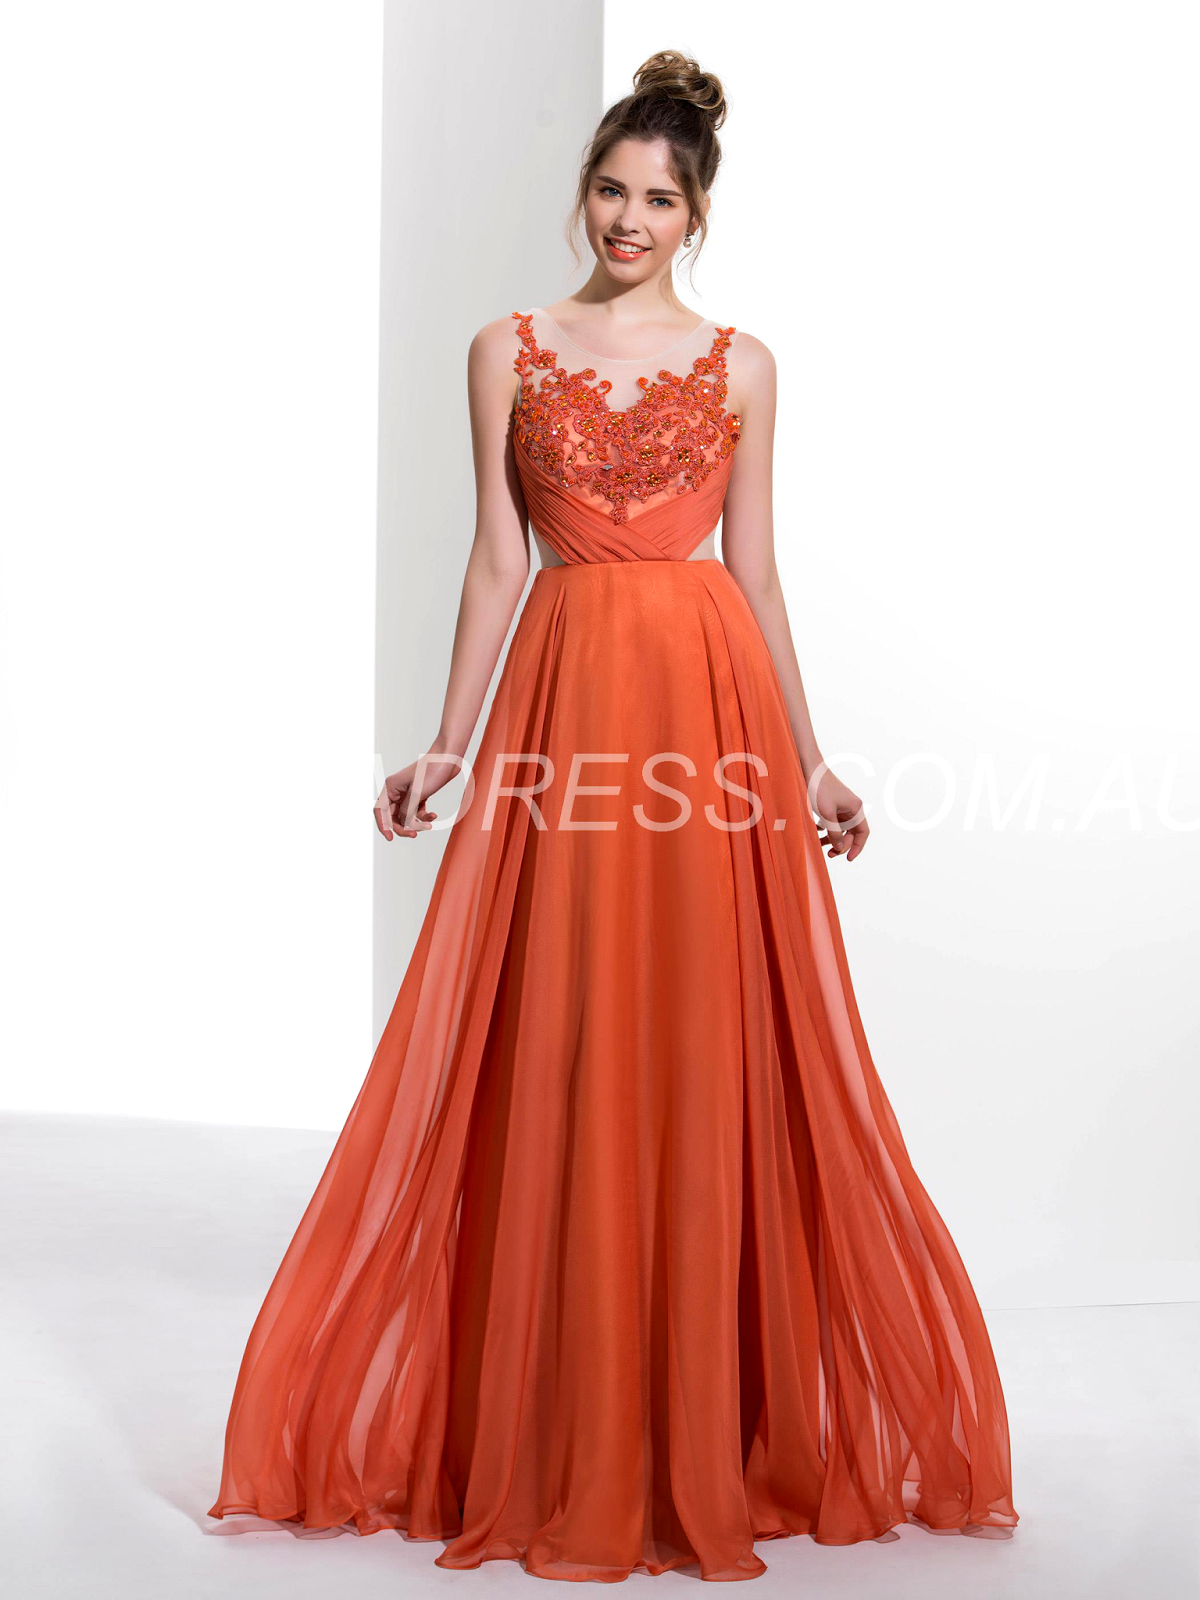 Floor-Length Prom Sleeveless Beading Glamorous & Dramatic Summer Zipper-up Orange Dress